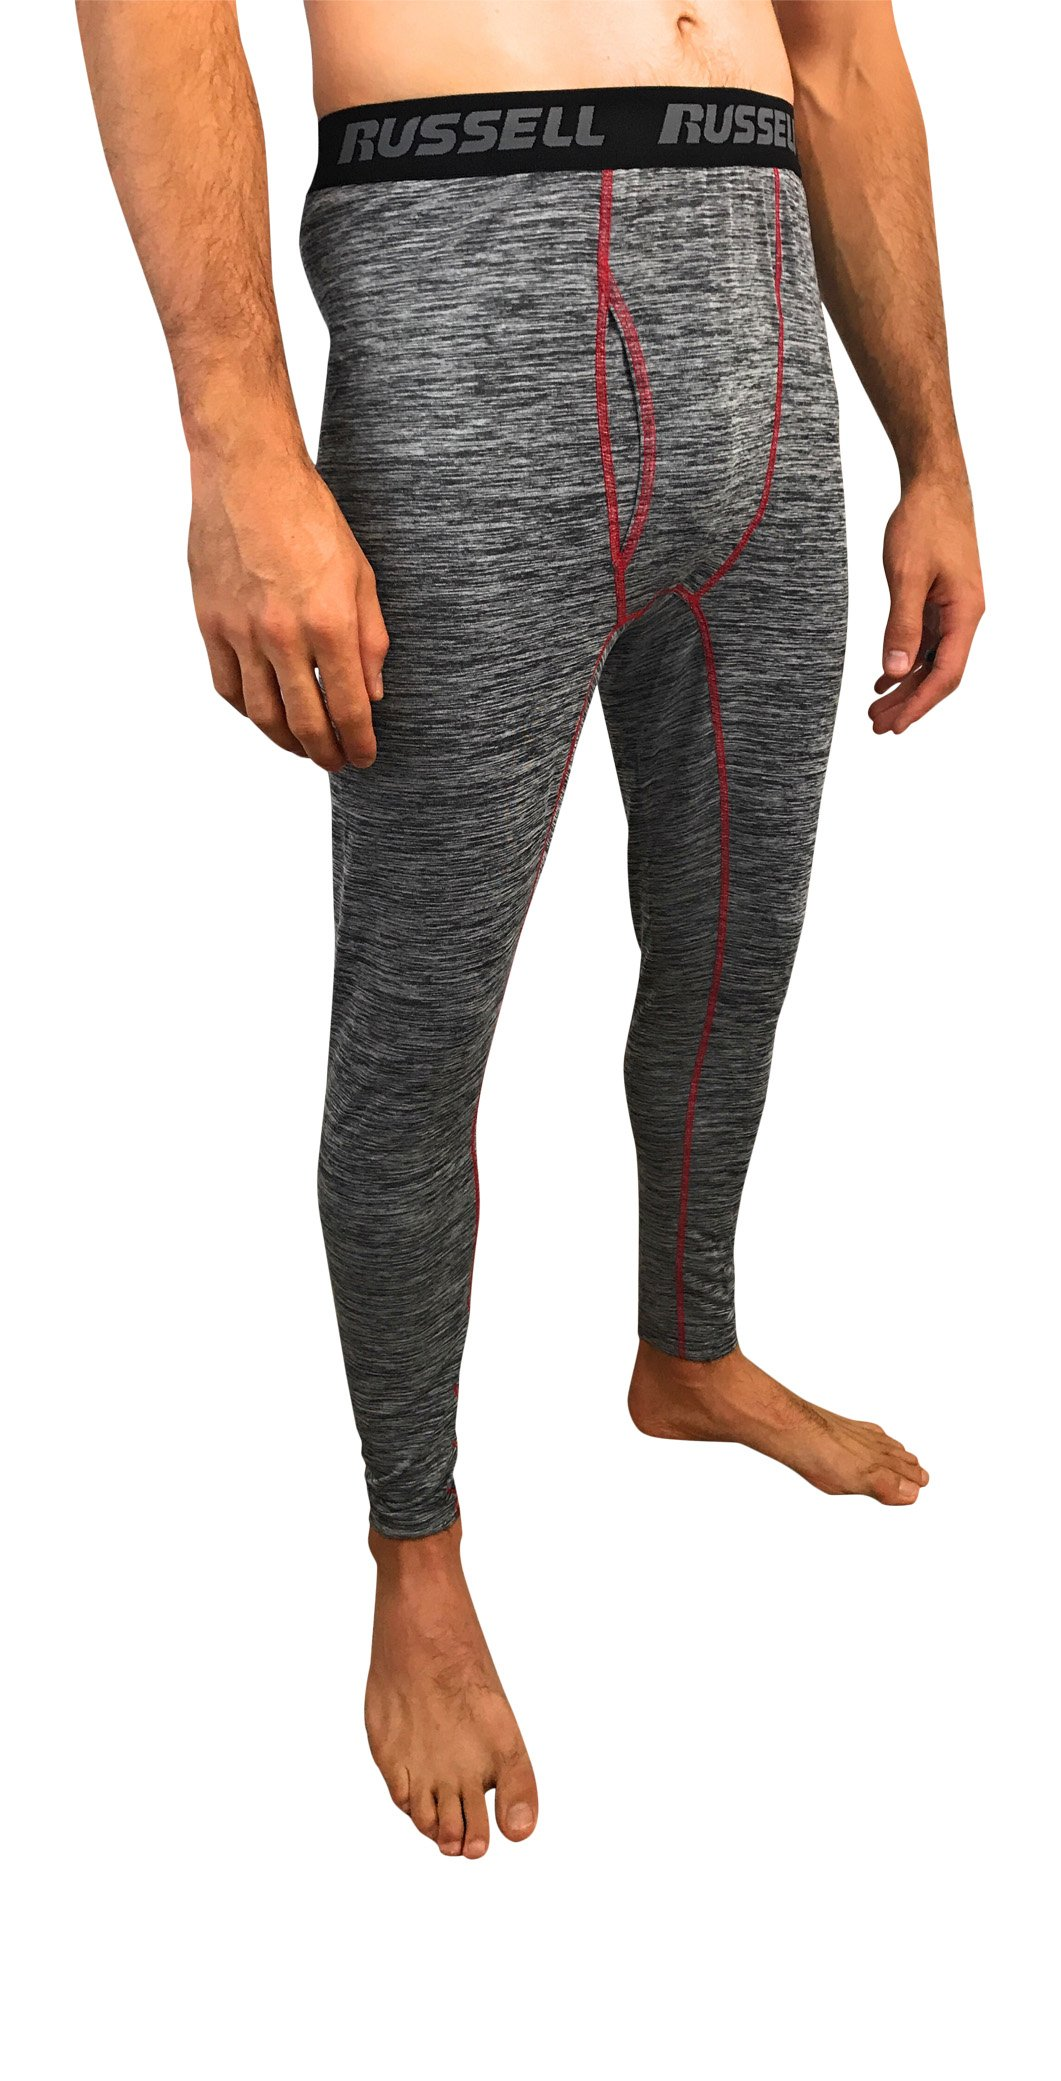 Russell Men's Performance Active Baselayer Thermal Pant / Bottom (Medium / 32-34, Grey / Red) by Russell Athletic